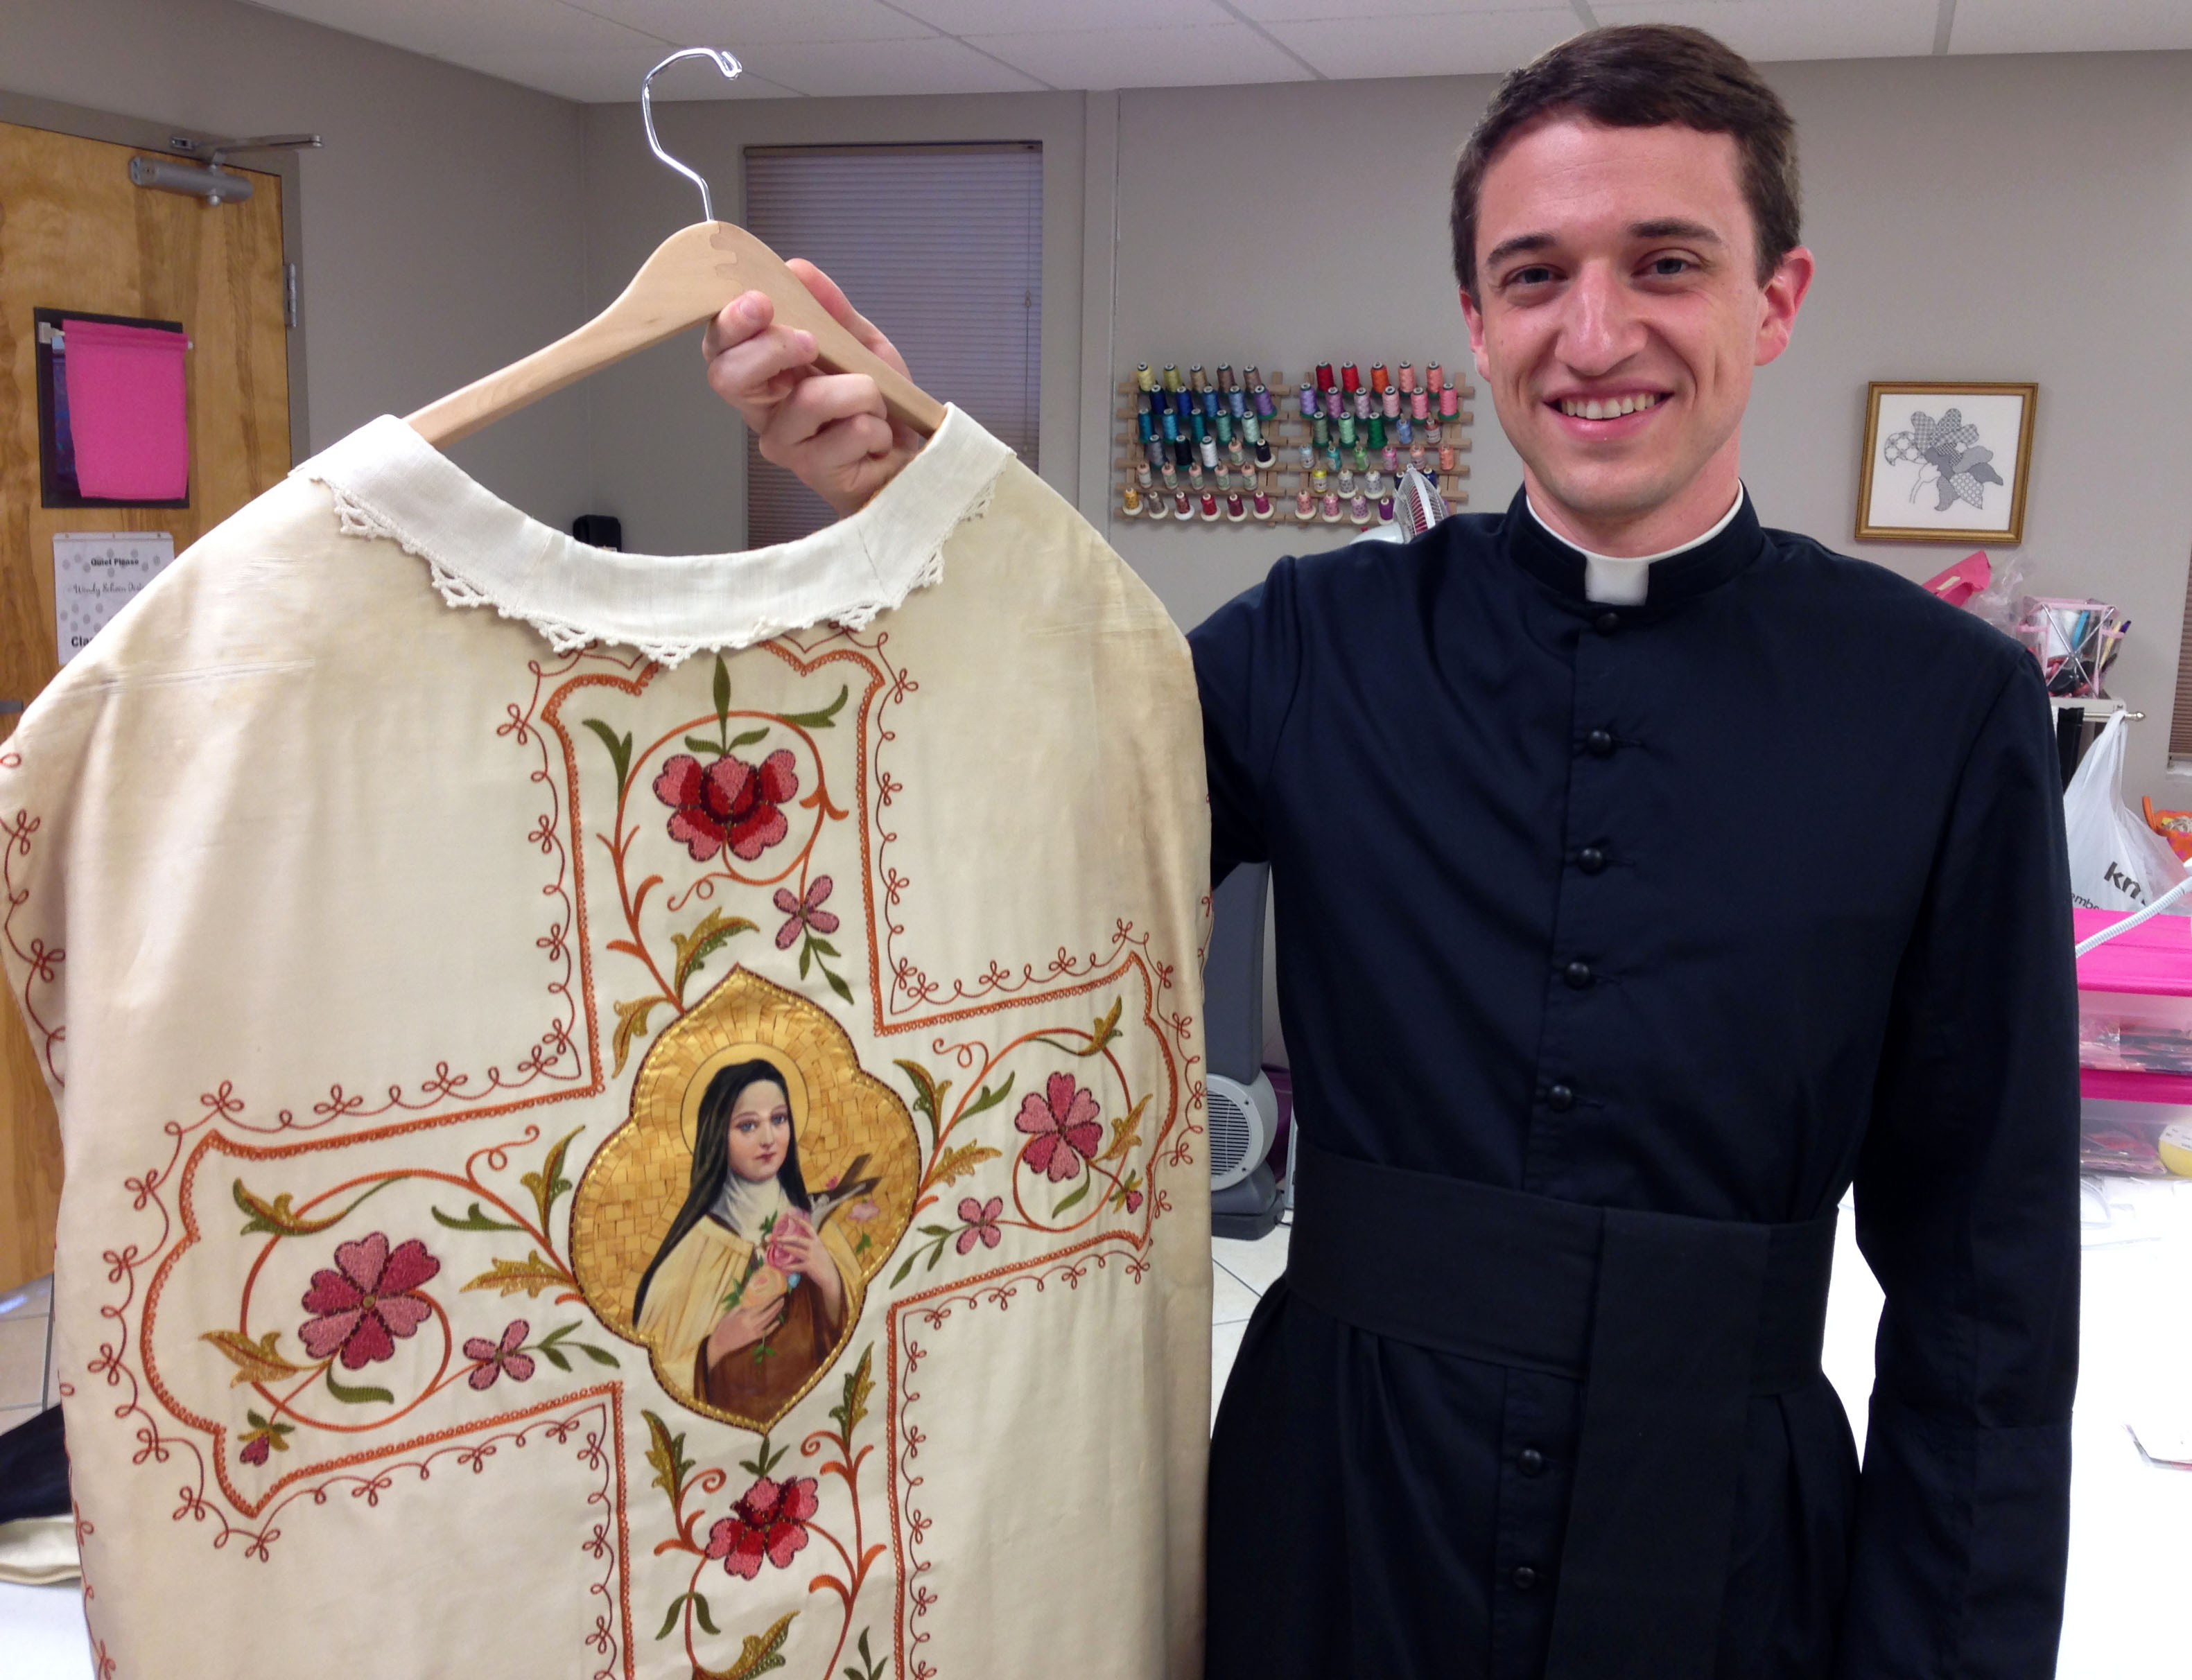 Fr. Garett O'Brien with his antique hand embroidered vestment with thread painting an goldwork.